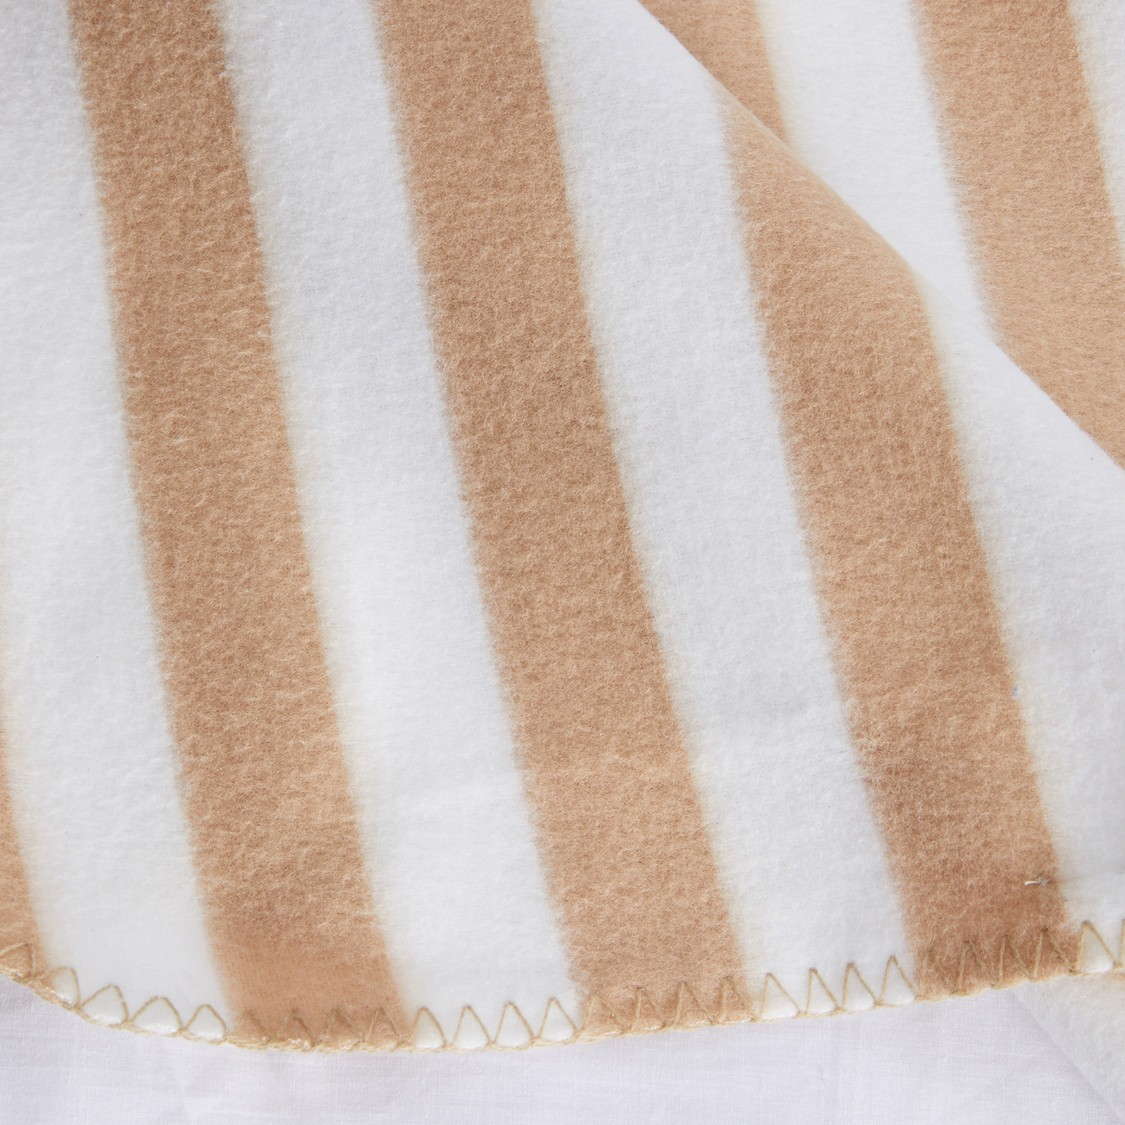 Striped Blanket with Stitch Detail